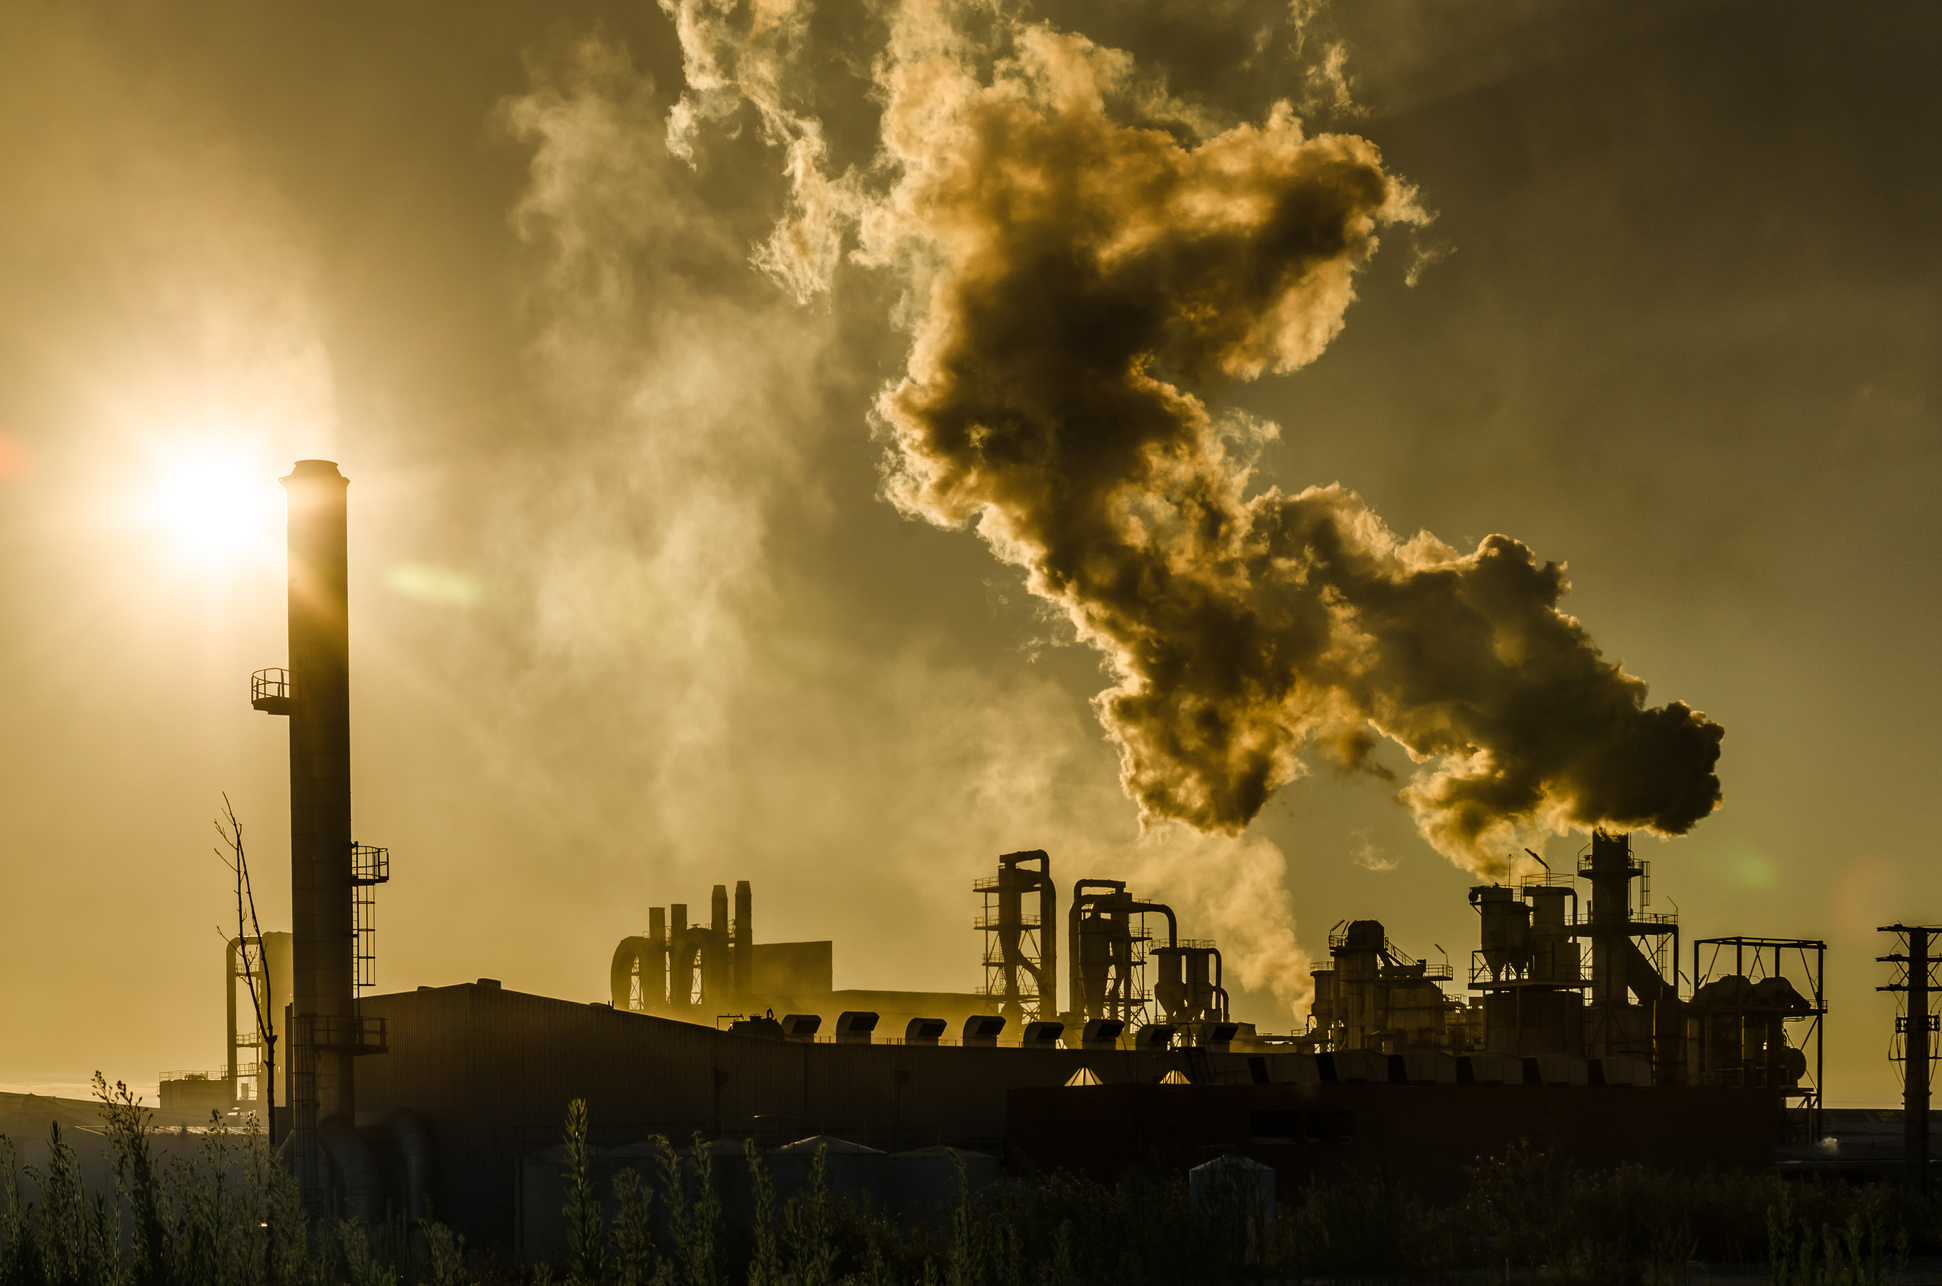 the air pollution How do we cause air pollution we cause air pollution directly through our use of electricity, fuels, and transportation we also cause air pollution indirectly, when we buy goods and services that use energy in their production and delivery.